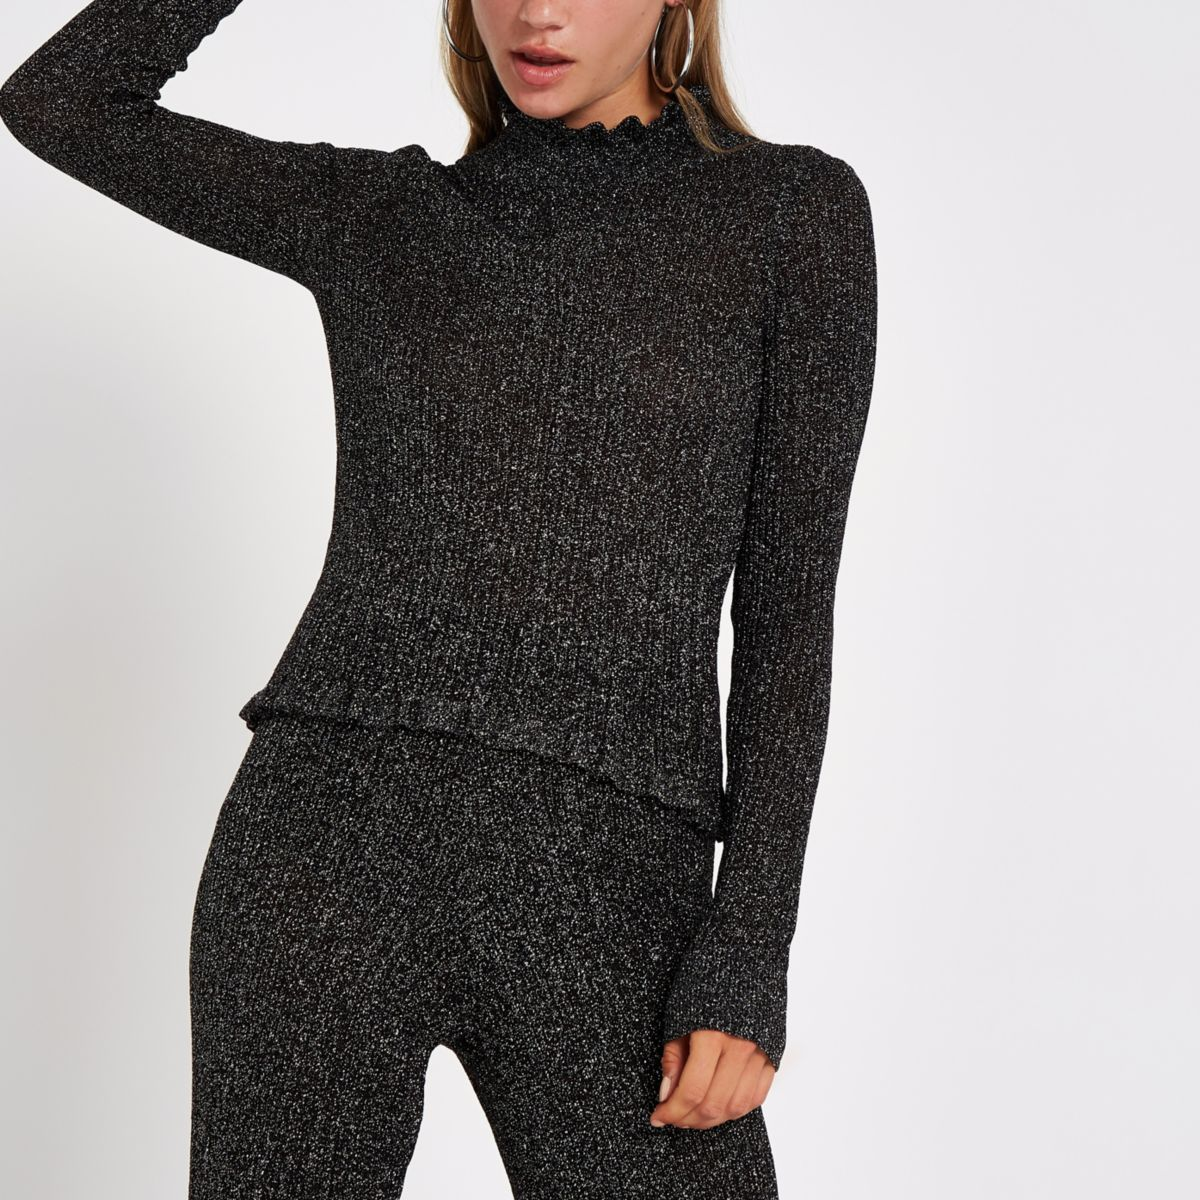 Black knit metallic high neck top